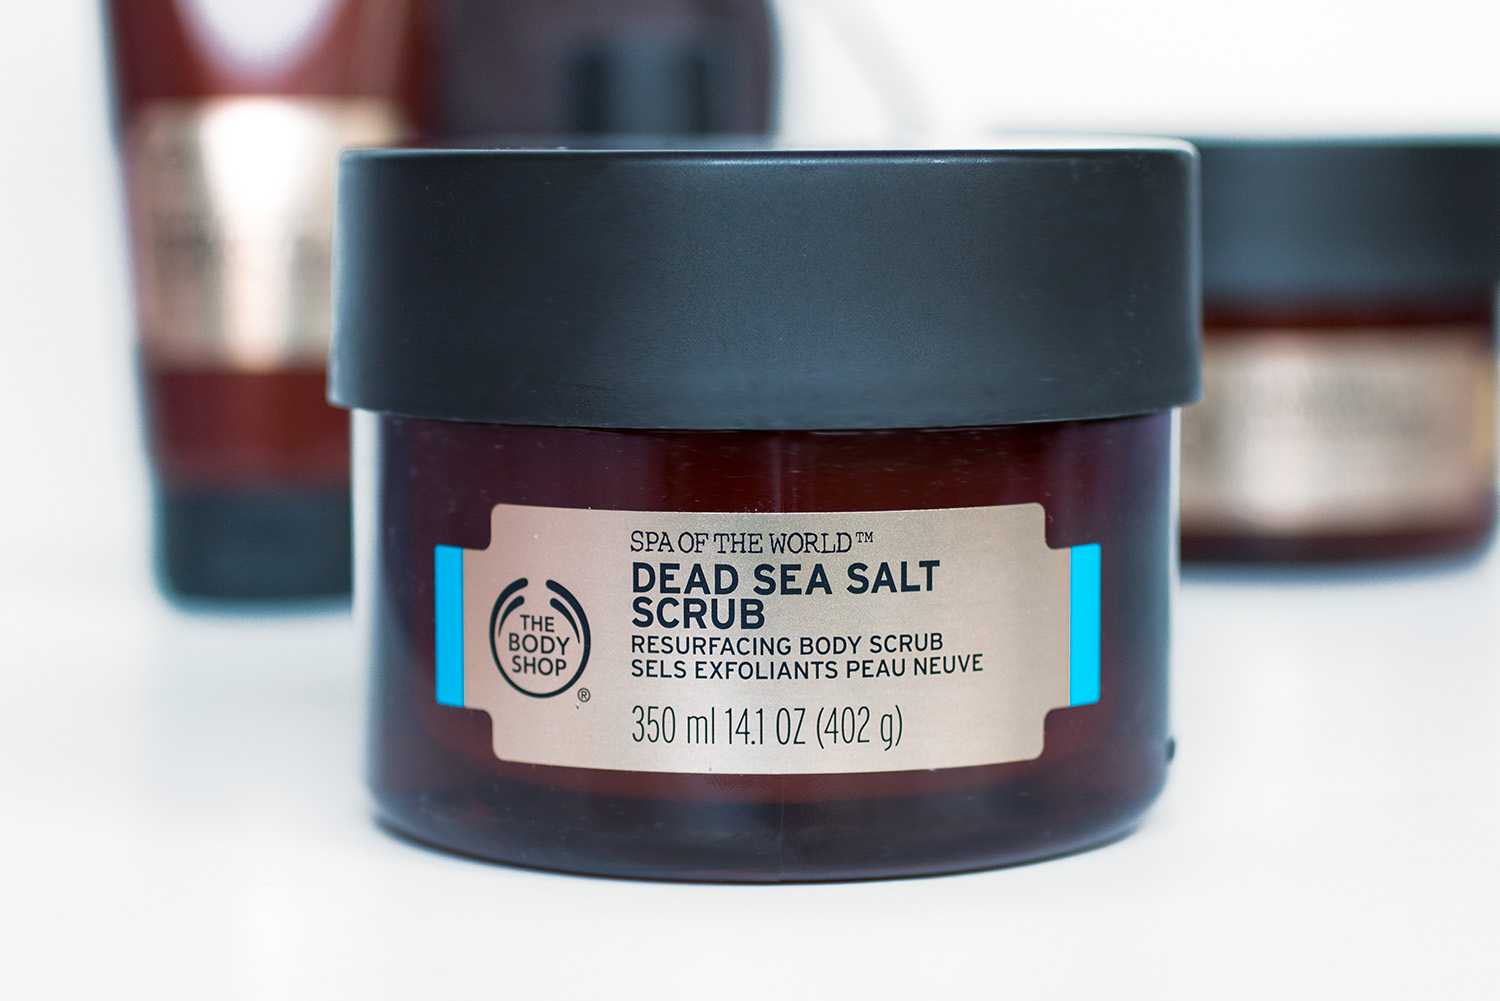 Spa of the World / Sels exfoliants peau neuve - The Body Shop